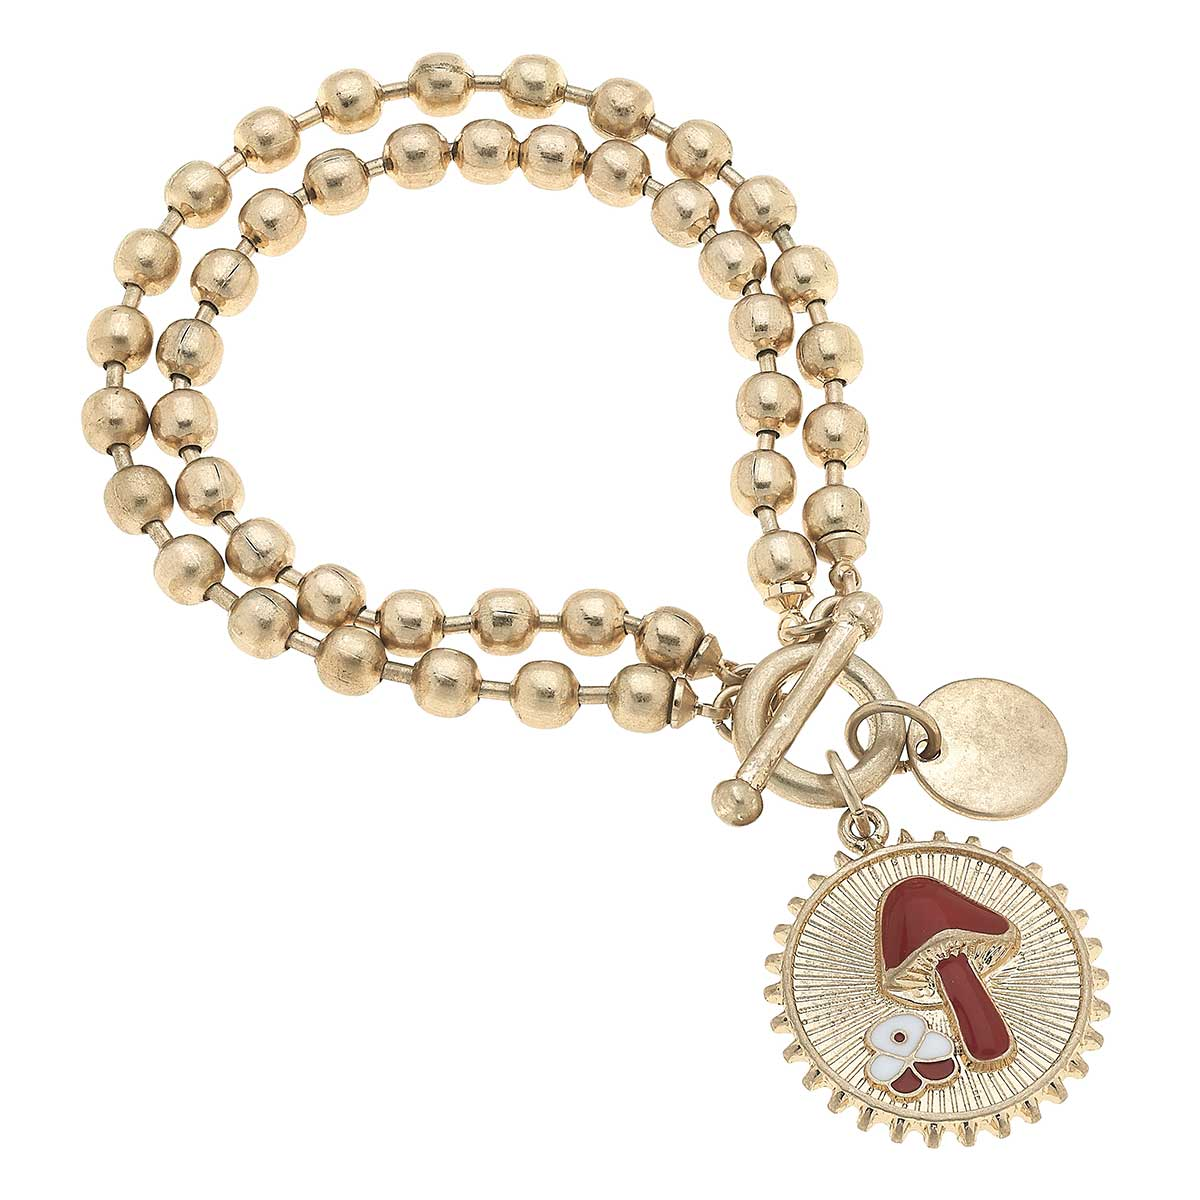 Delaine Mushroom Layered Ball Chain T-Bar Bracelet in Worn Gold